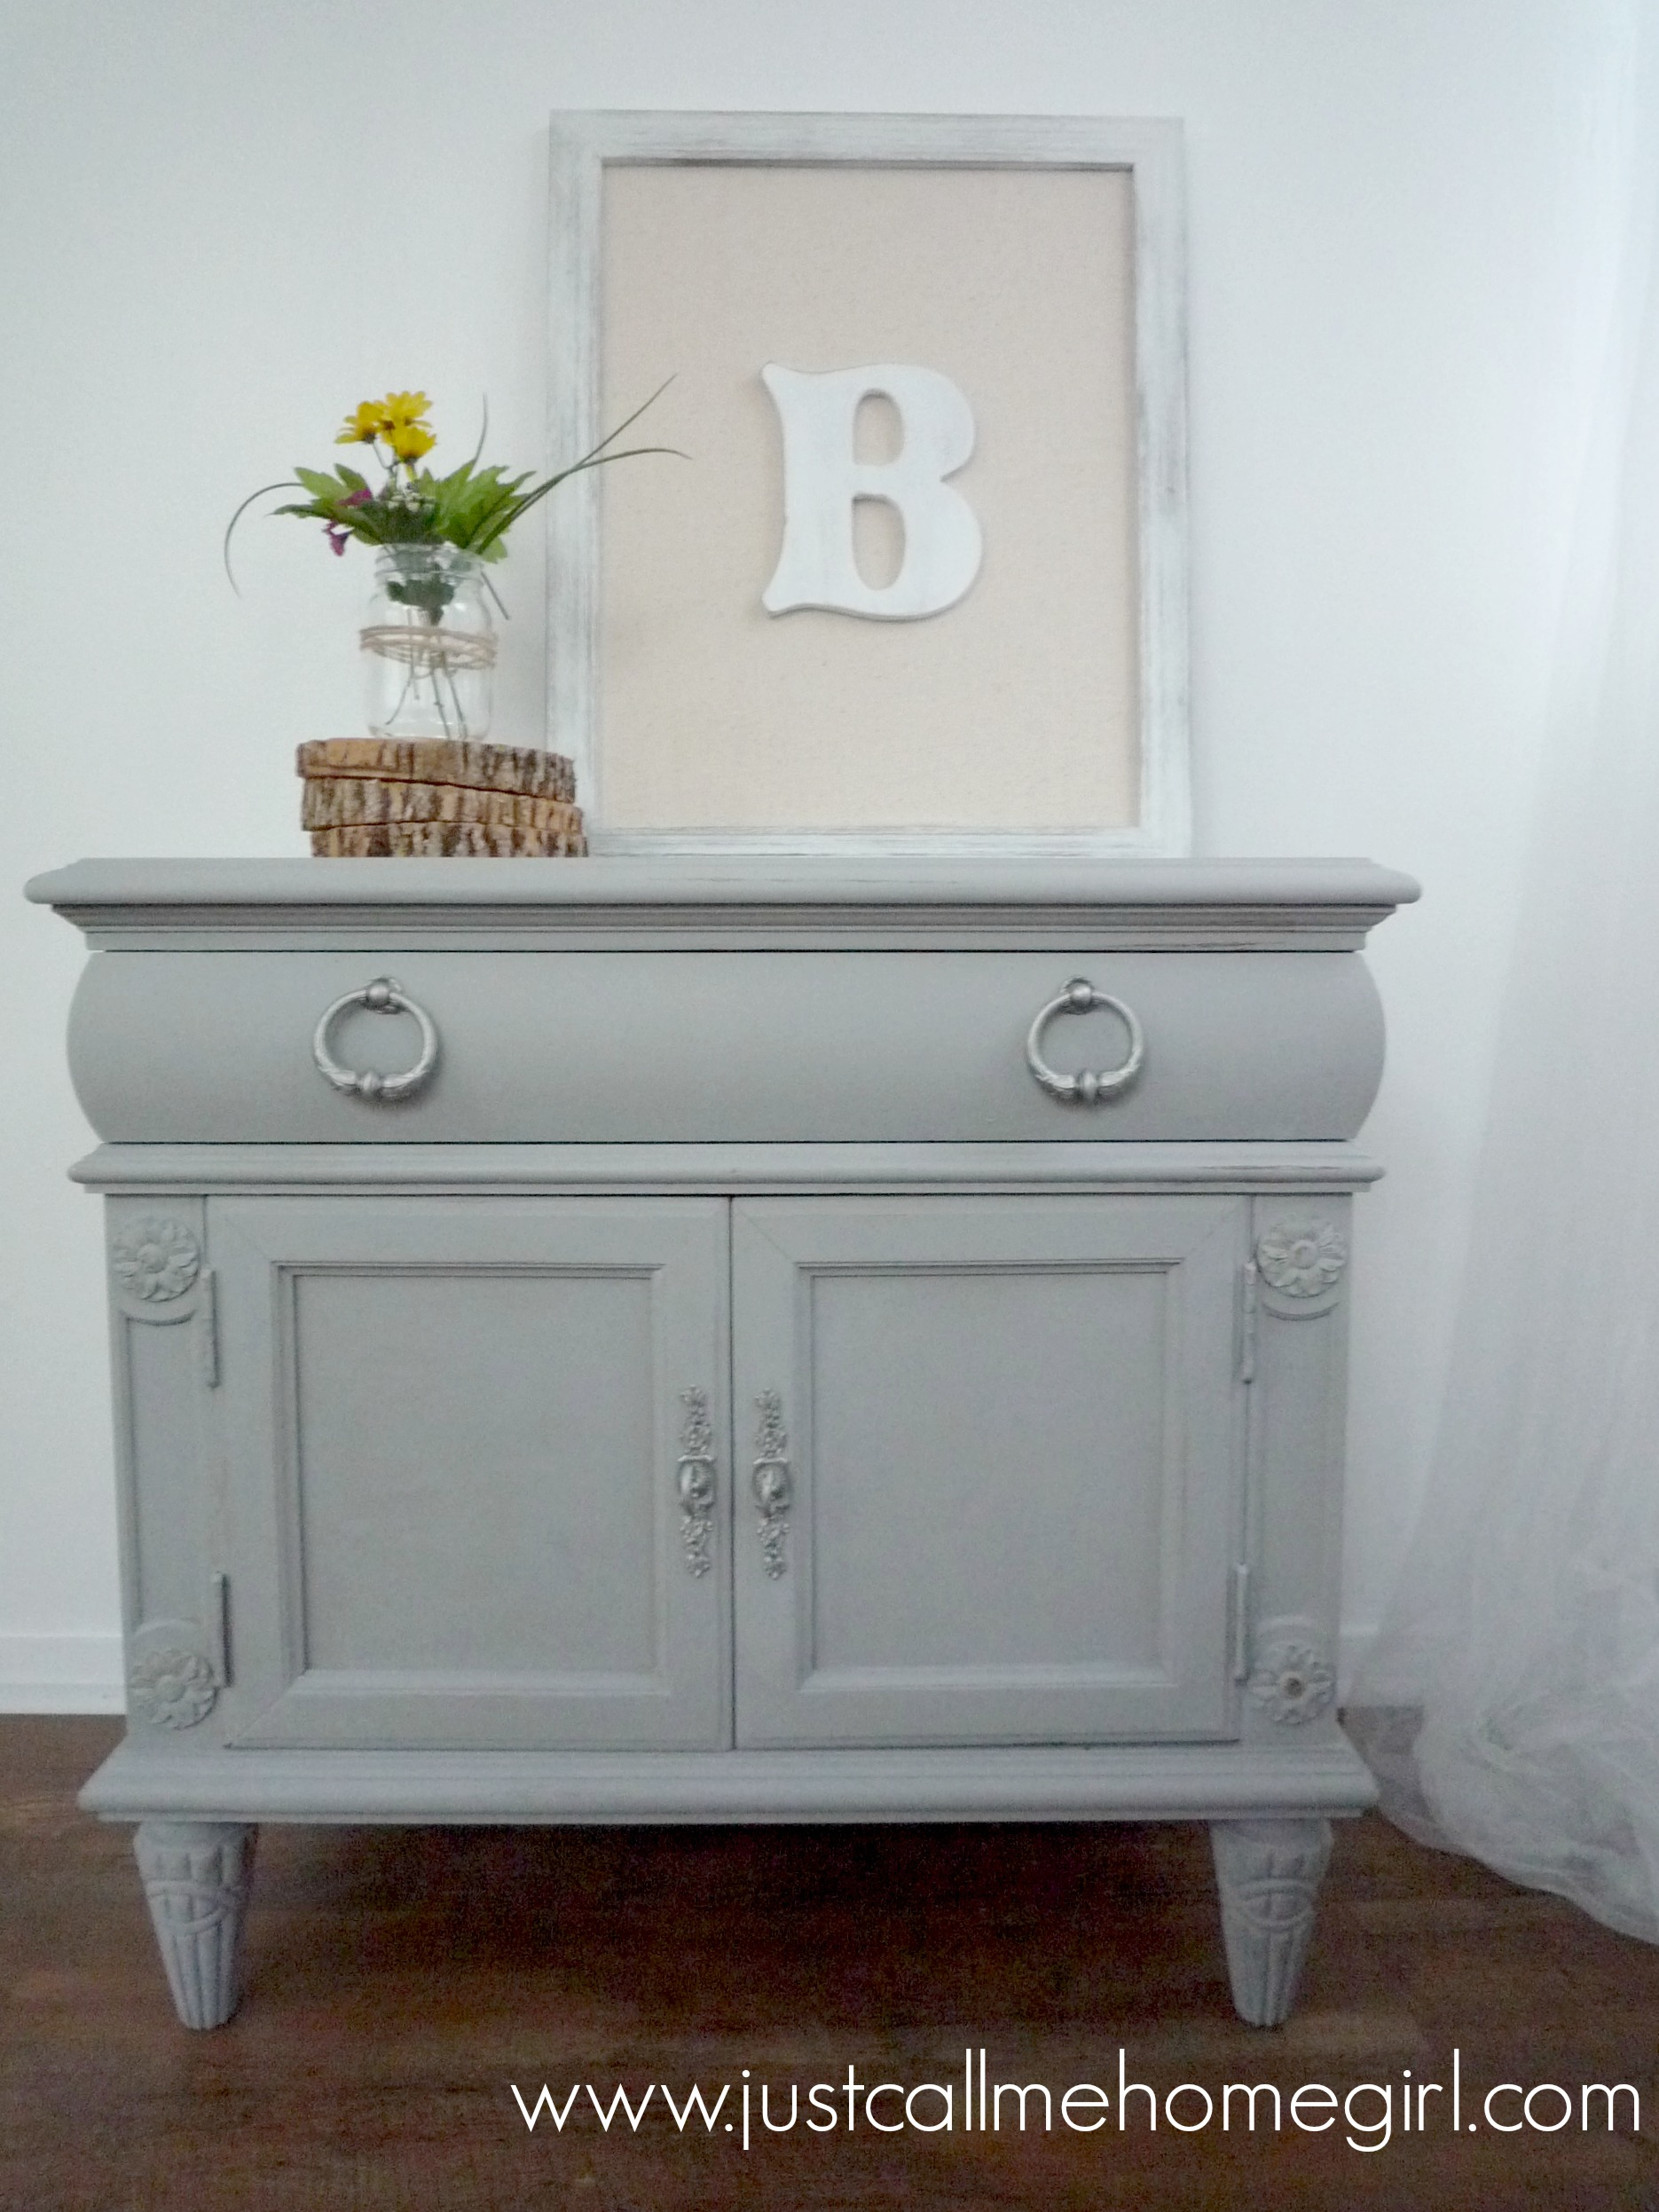 Valspar 39 s chalky finish paint makeover just call me homegirl for Furniture paint colors